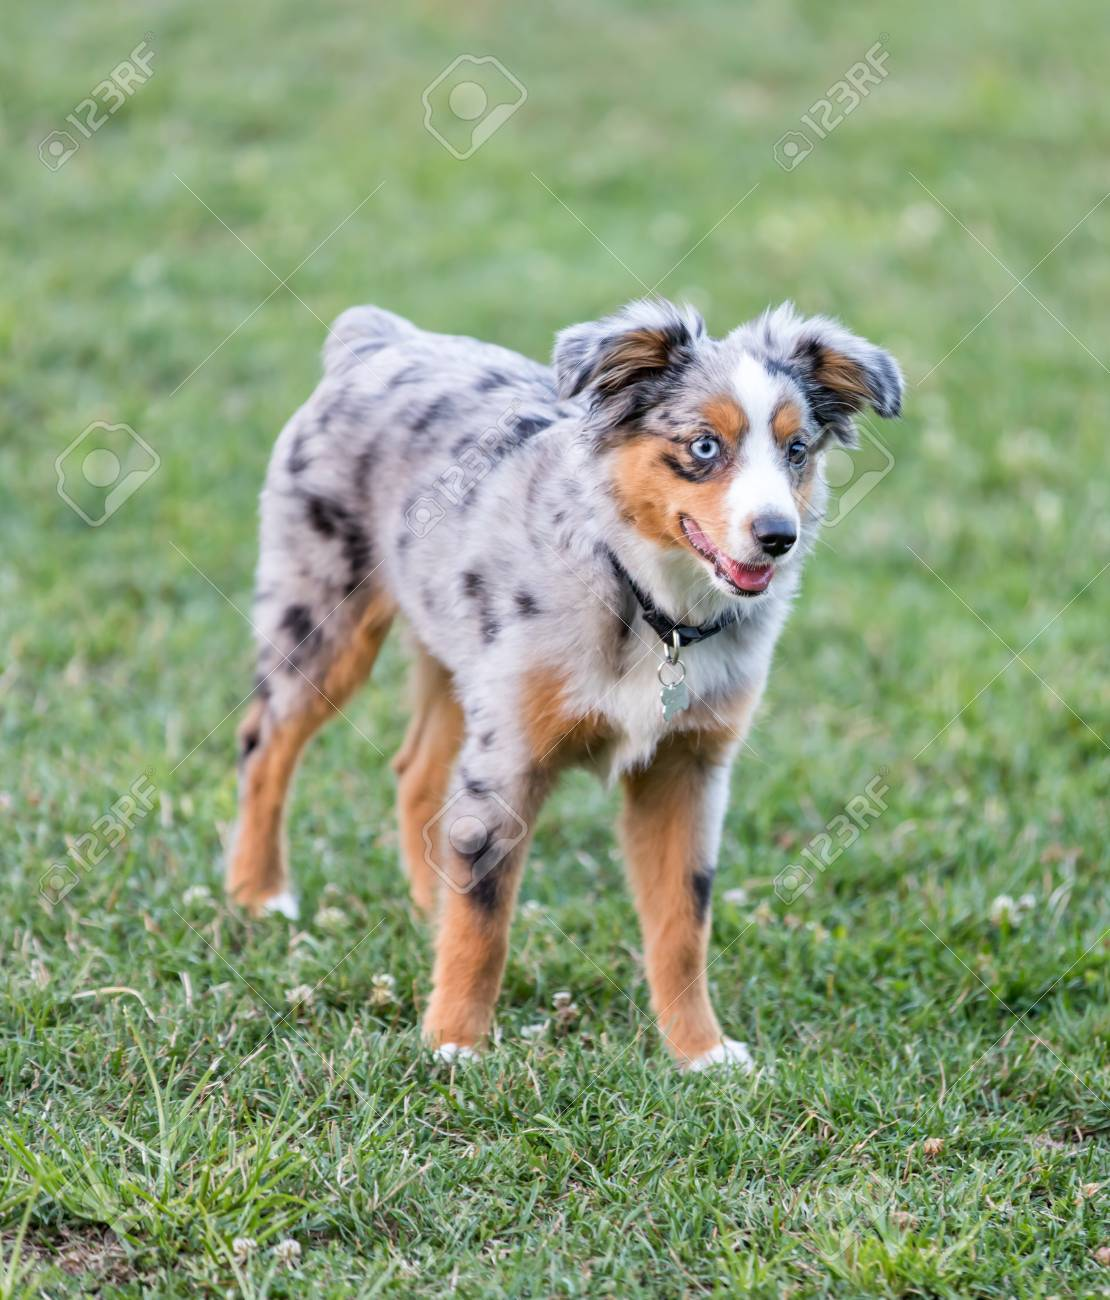 Blue Merle Australian Shepherd Puppy Standing Off Leash Dog Stock Photo Picture And Royalty Free Image Image 106849822